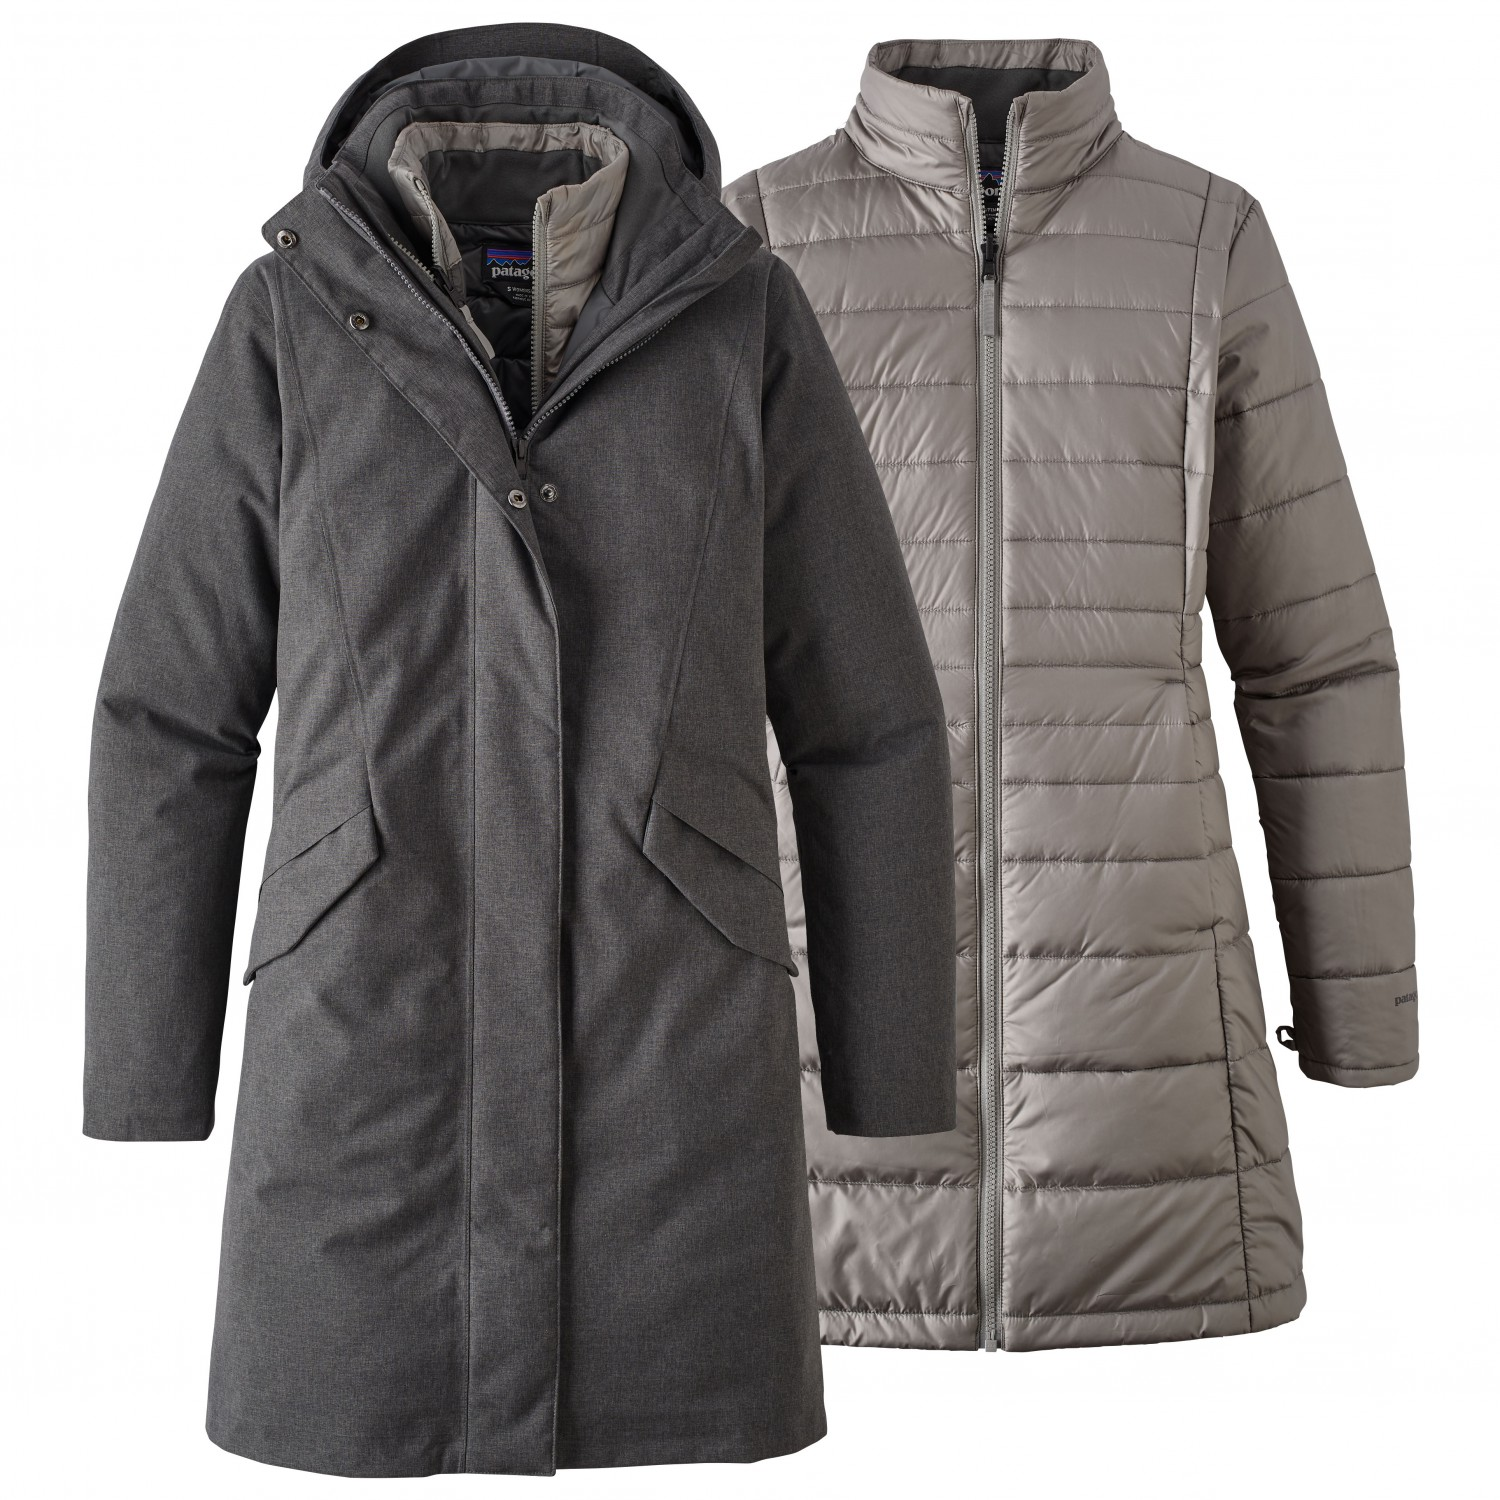 outlet store b58f3 206de Patagonia - Women's Vosque 3-In-1 Parka - Giacca doppia - Forge Grey   XS